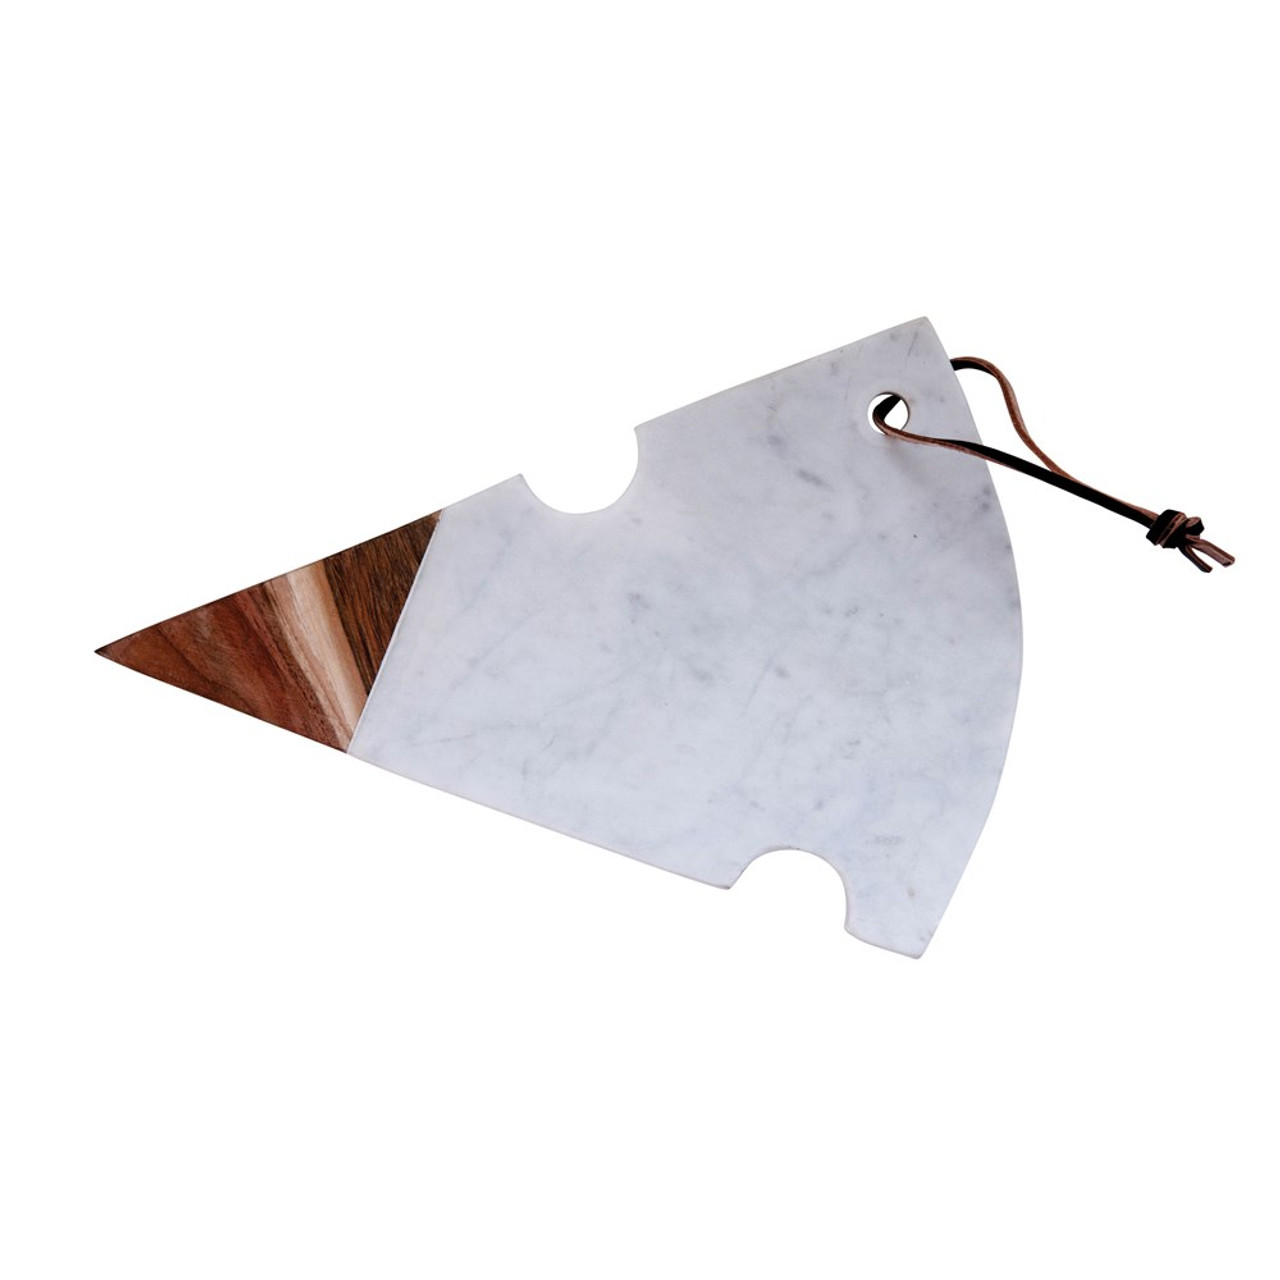 Marble & Acacia Wood Cheese Slice Cutting Board with Leather Tie.